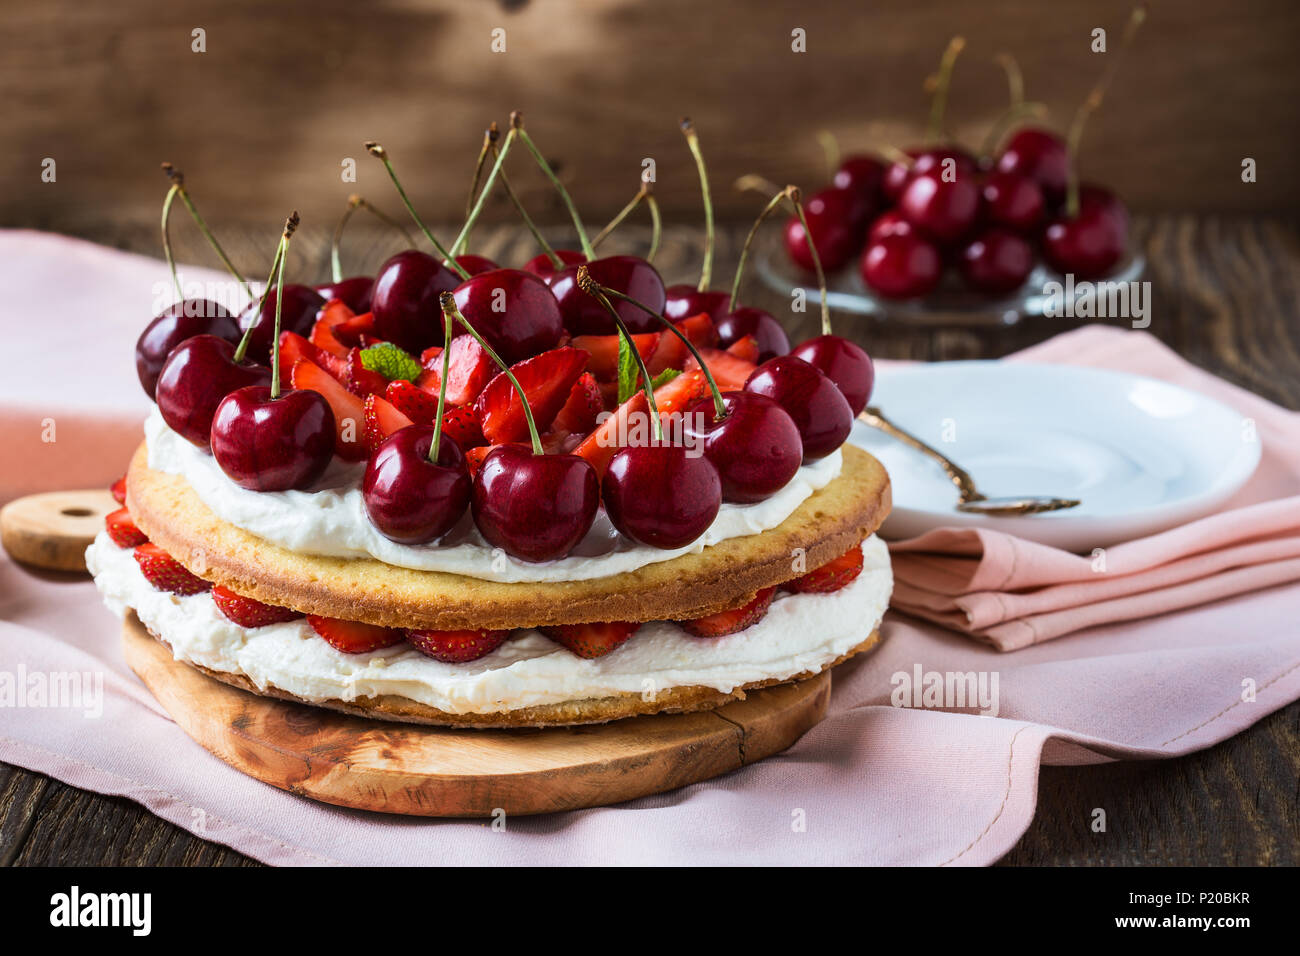 Homemade cream layer cake, fresh, colorful, and delicious dessert with juicy strawberries, sweet cherry, and whipped cream - Stock Image